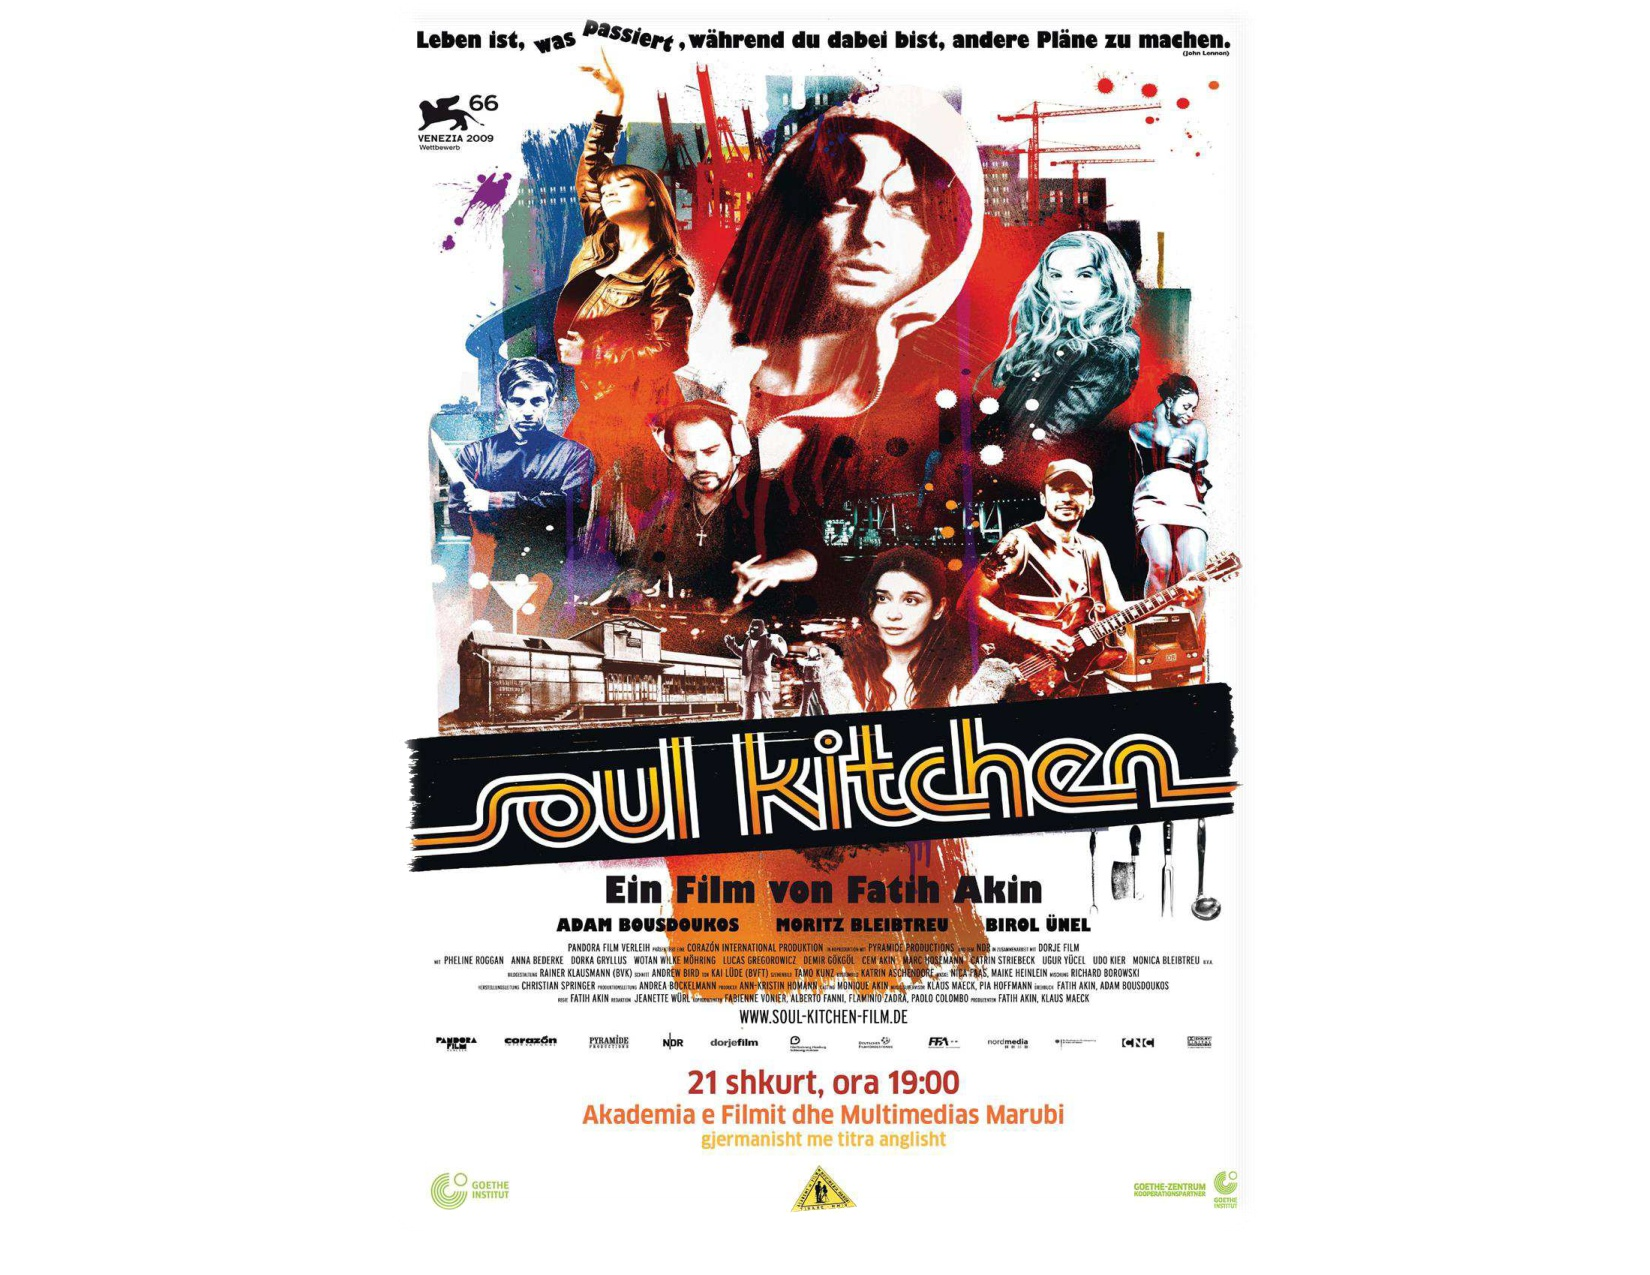 Soul kitchen (Movie) by Goethe-Zentrum